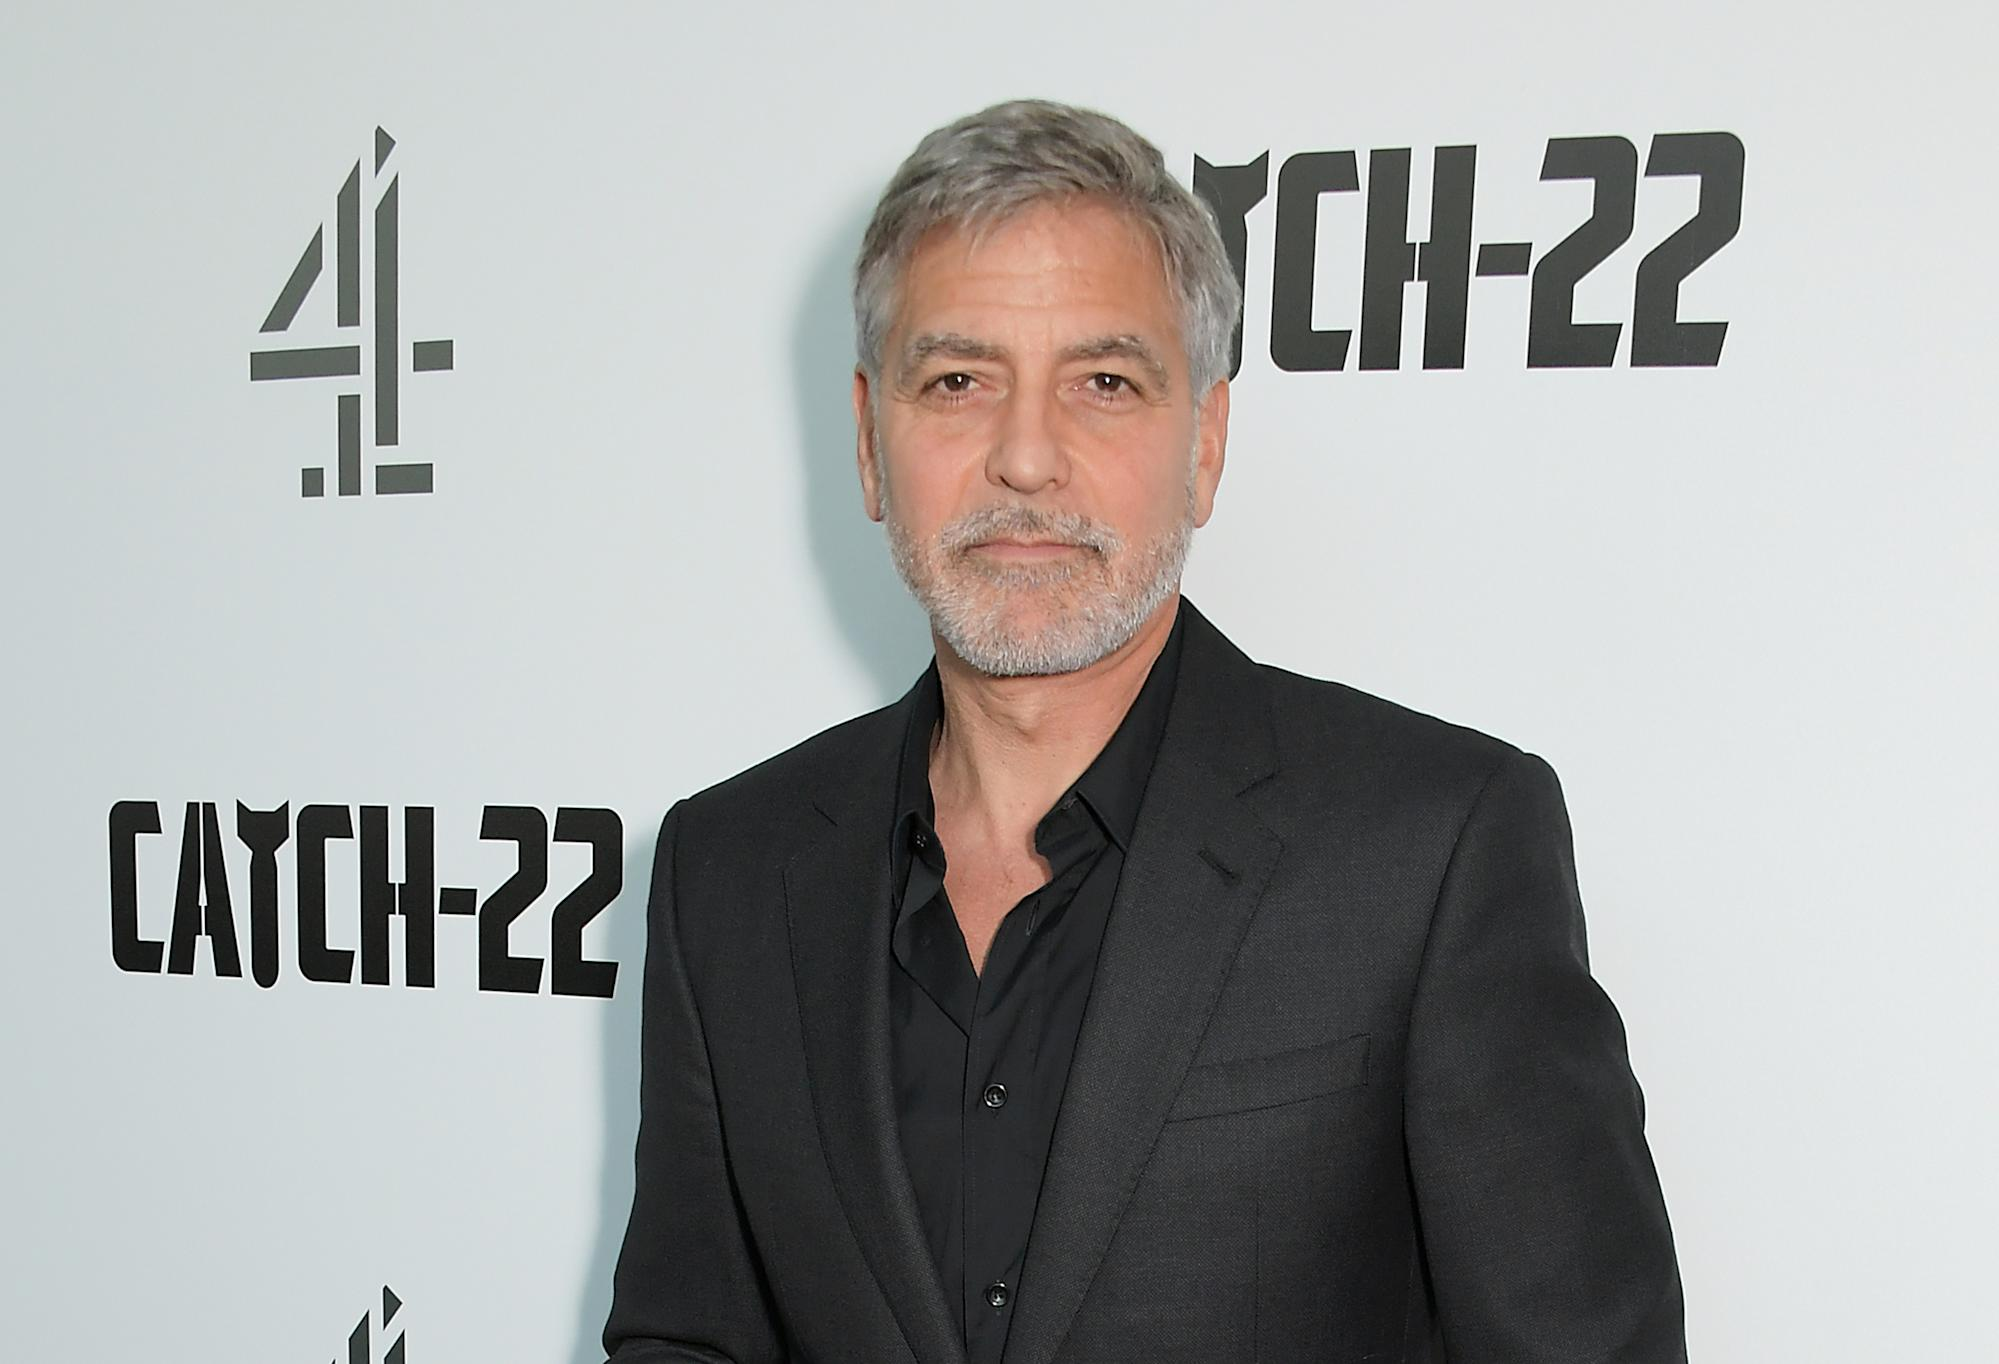 George Clooney says Trump family belongs in the 'dustpan of history' following Capitol attack